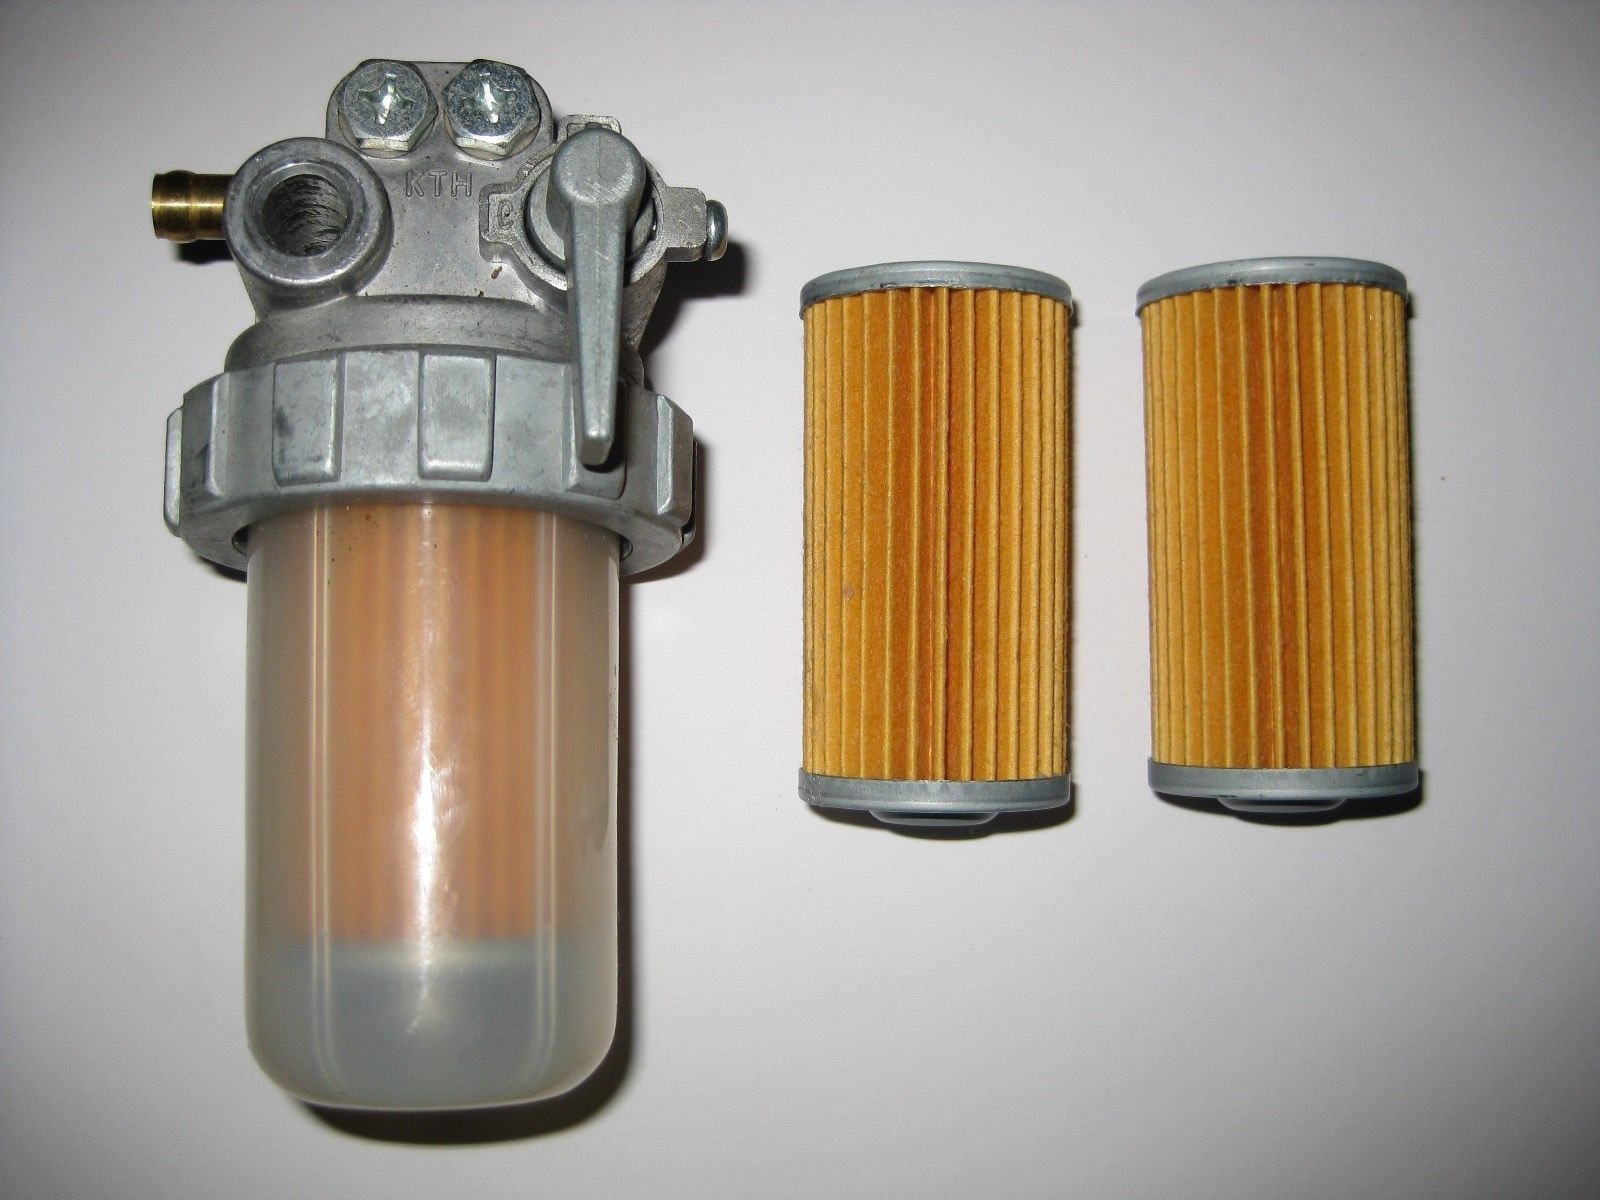 hight resolution of kubota model fuel filter valve 2 spare elements 104500 55710 ebay